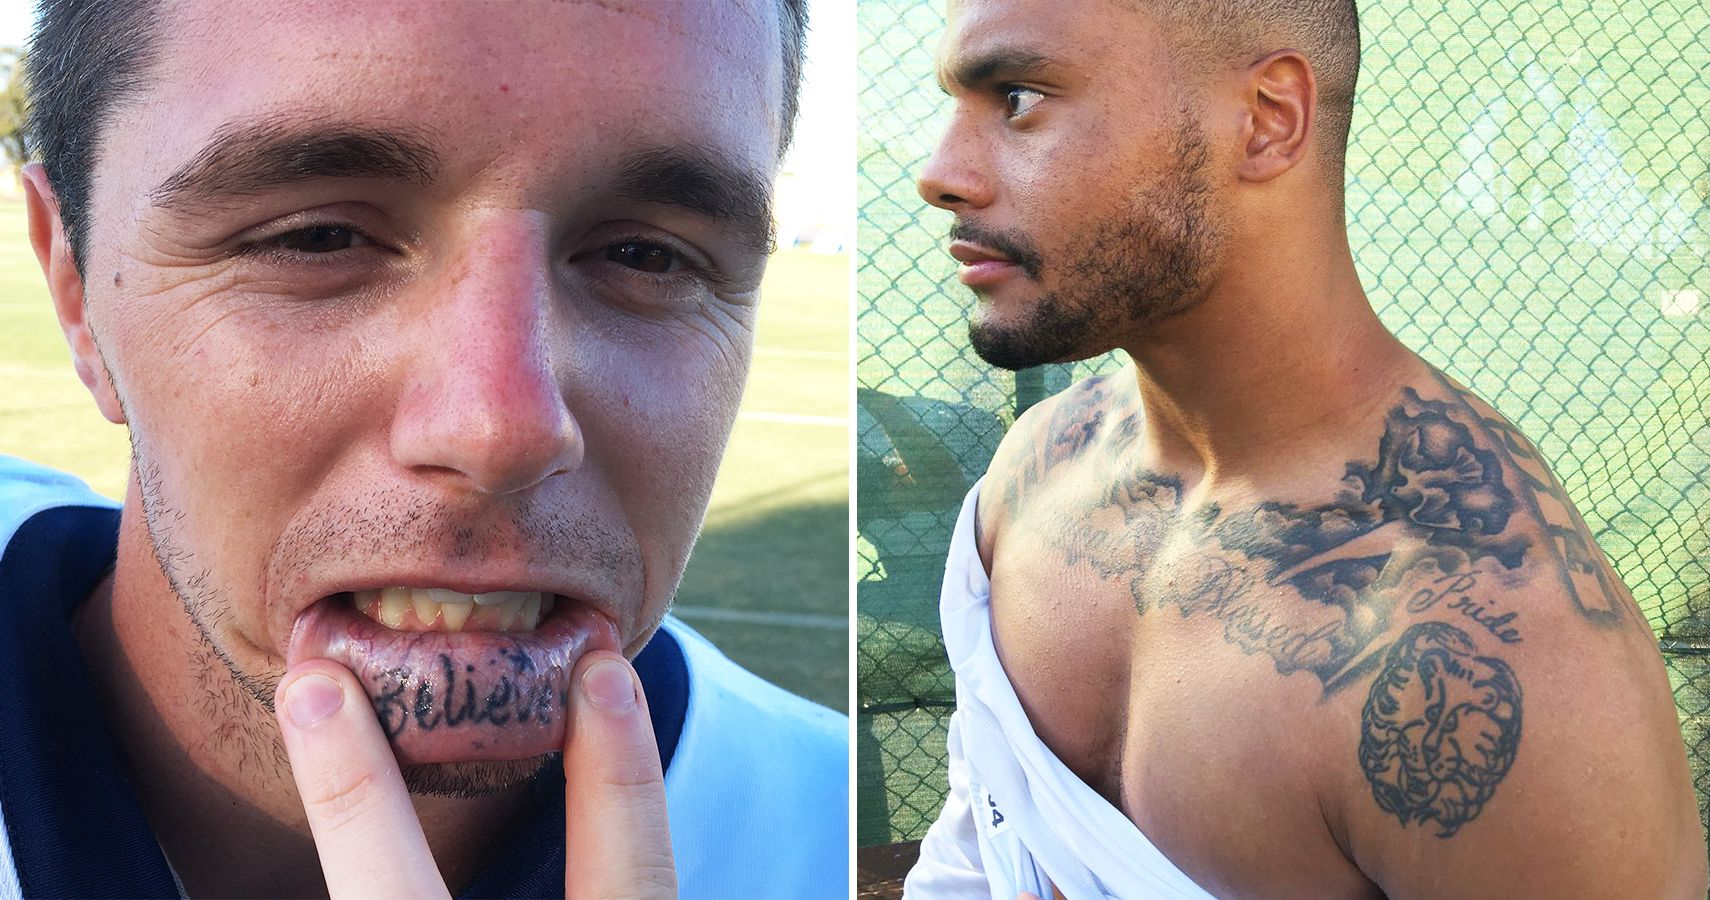 Nfl Tattoos The Worst And B...